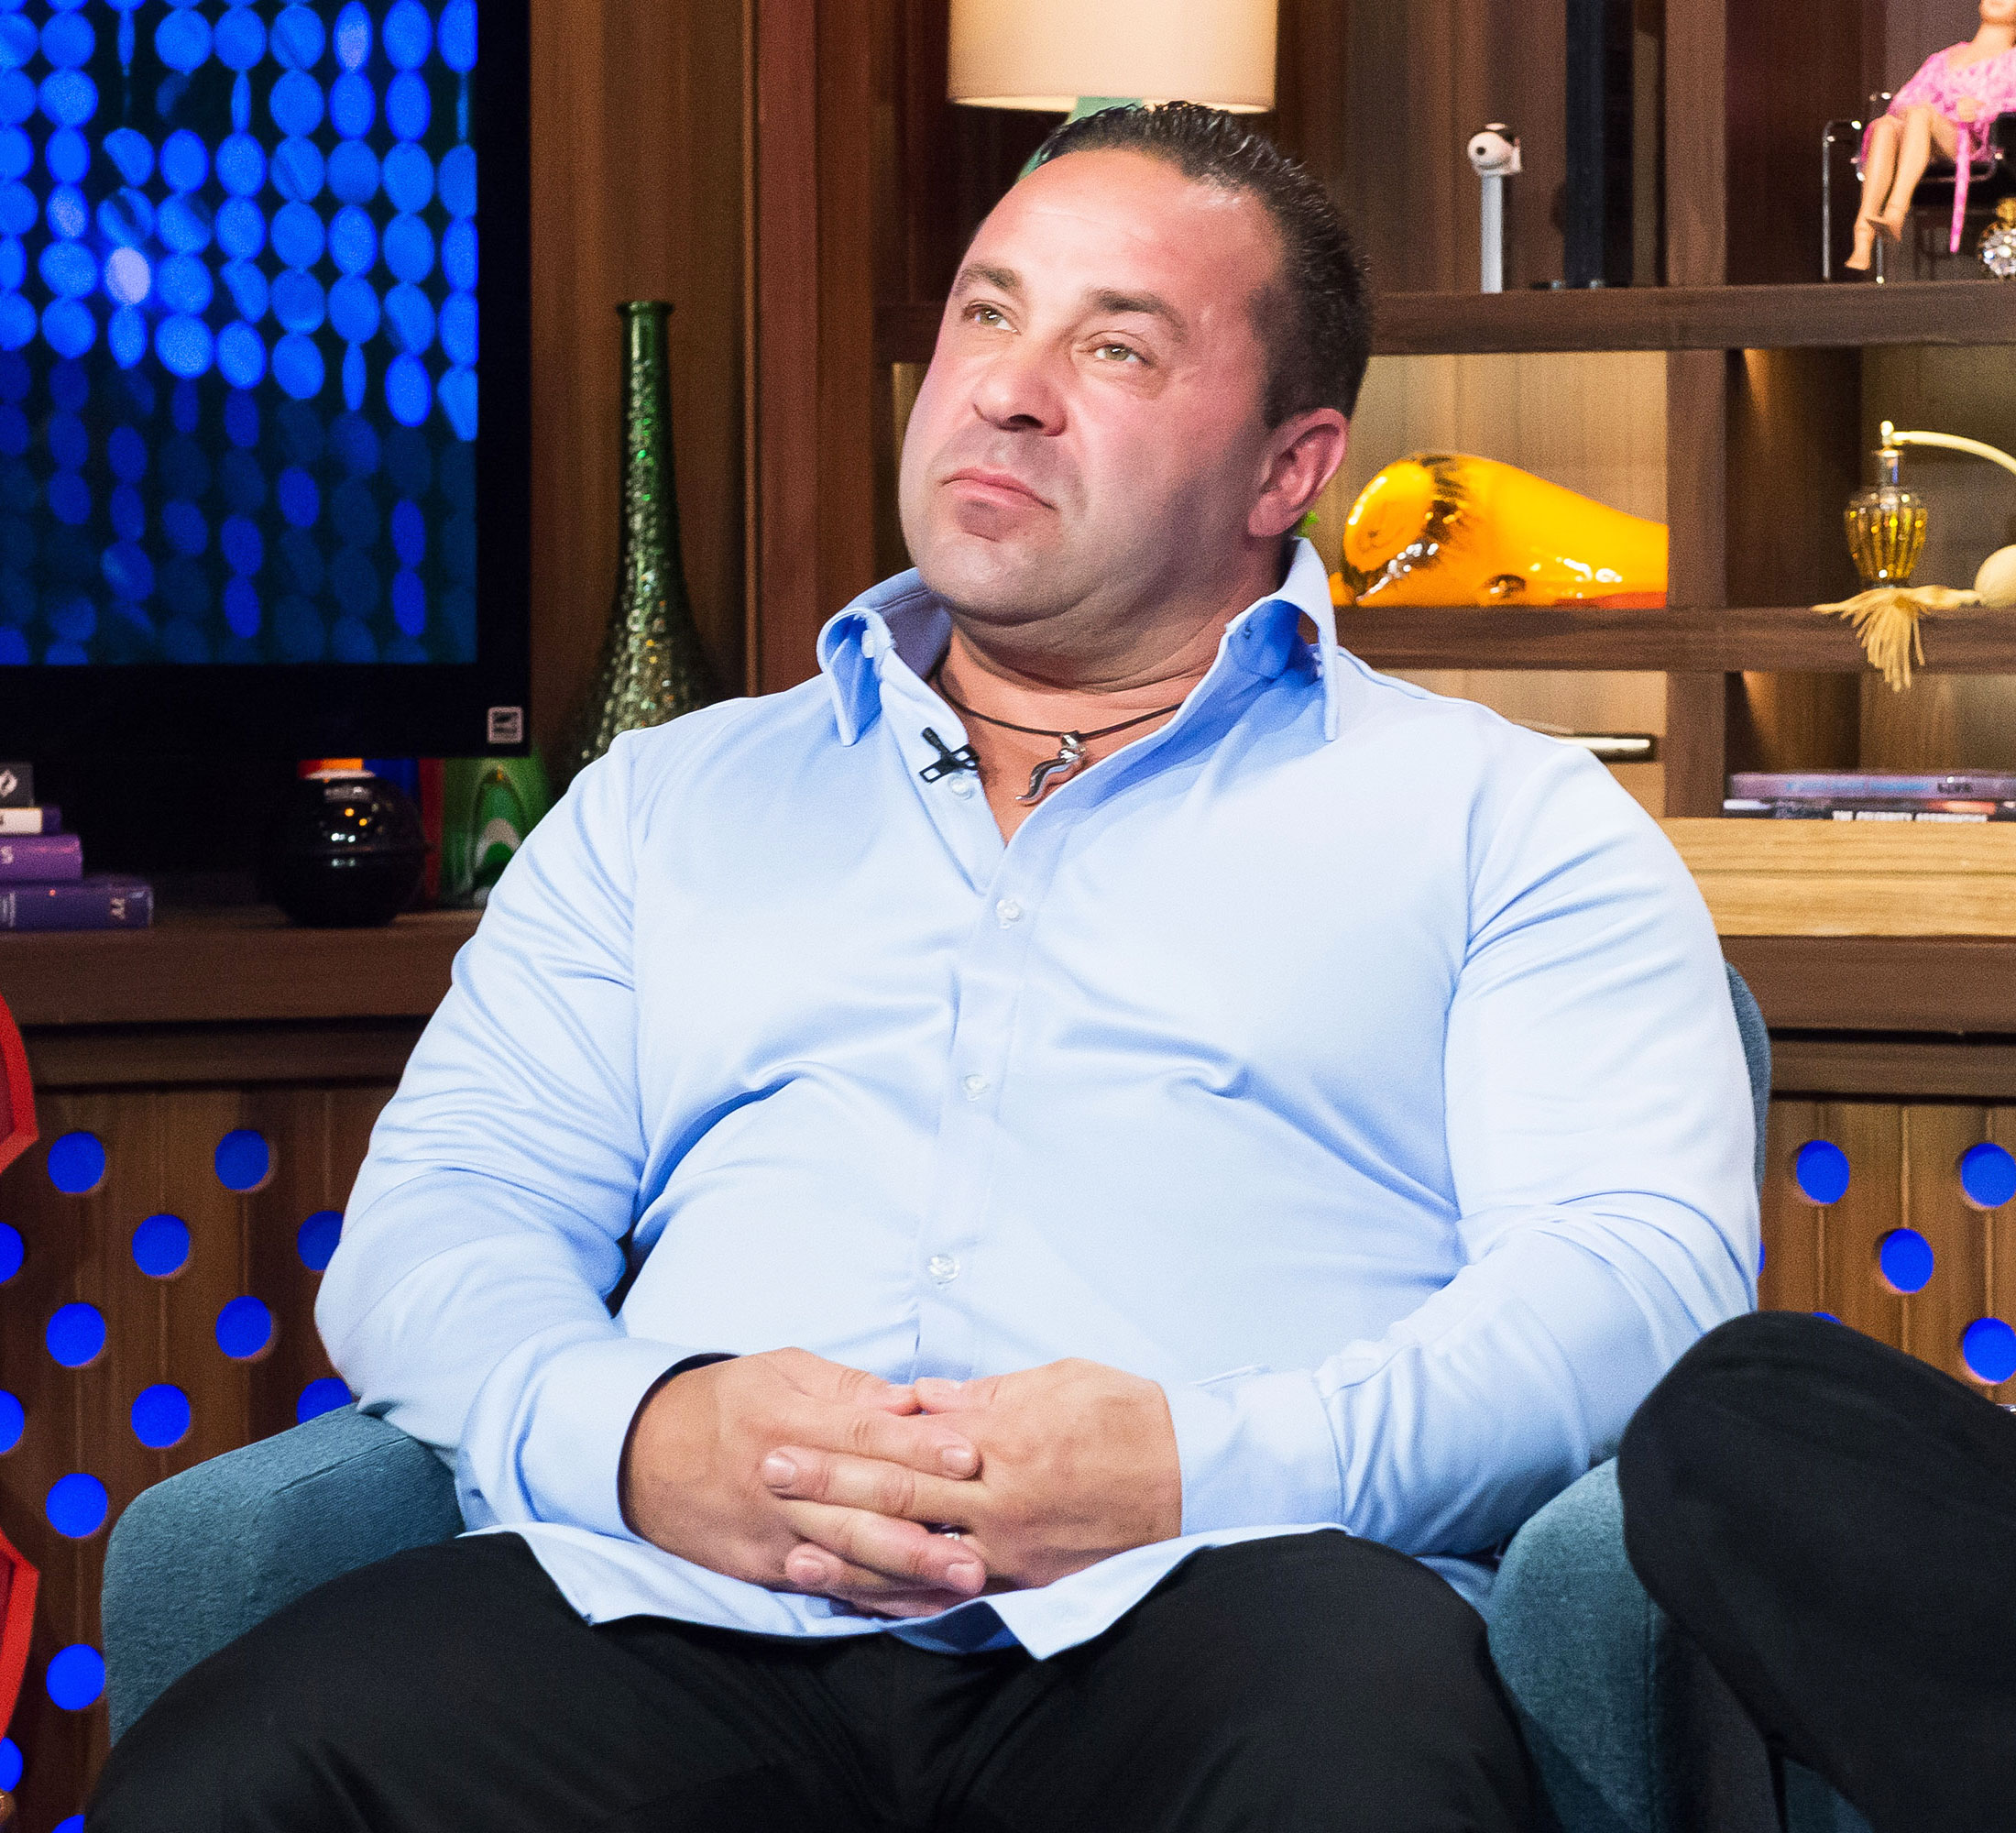 Joe Giudice - Pictured: Joe Giudice